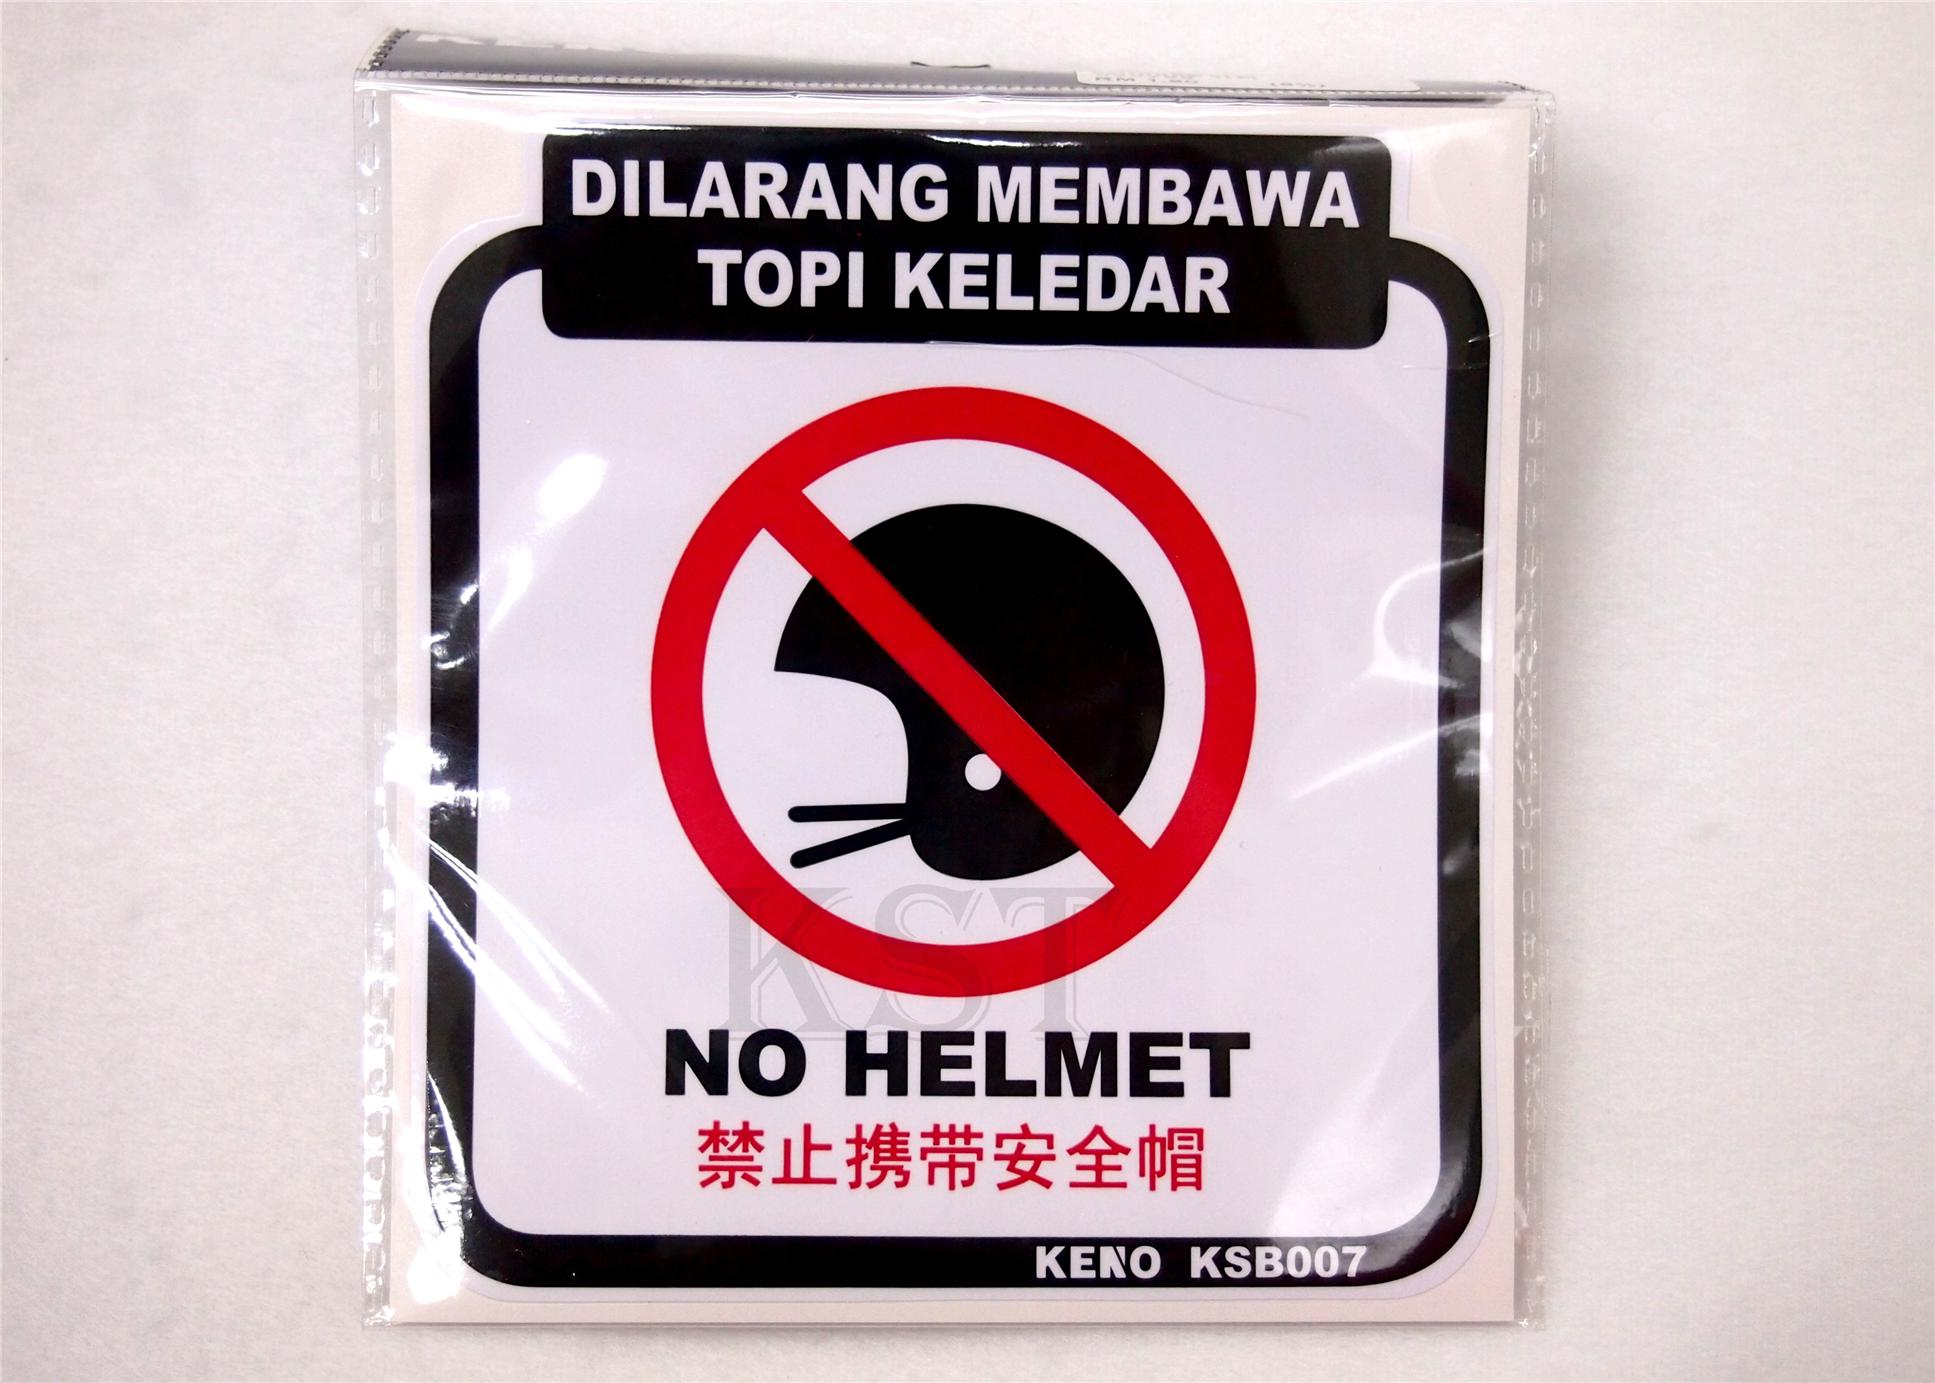 KSB007 STICKER (NO HELMET) 1PC